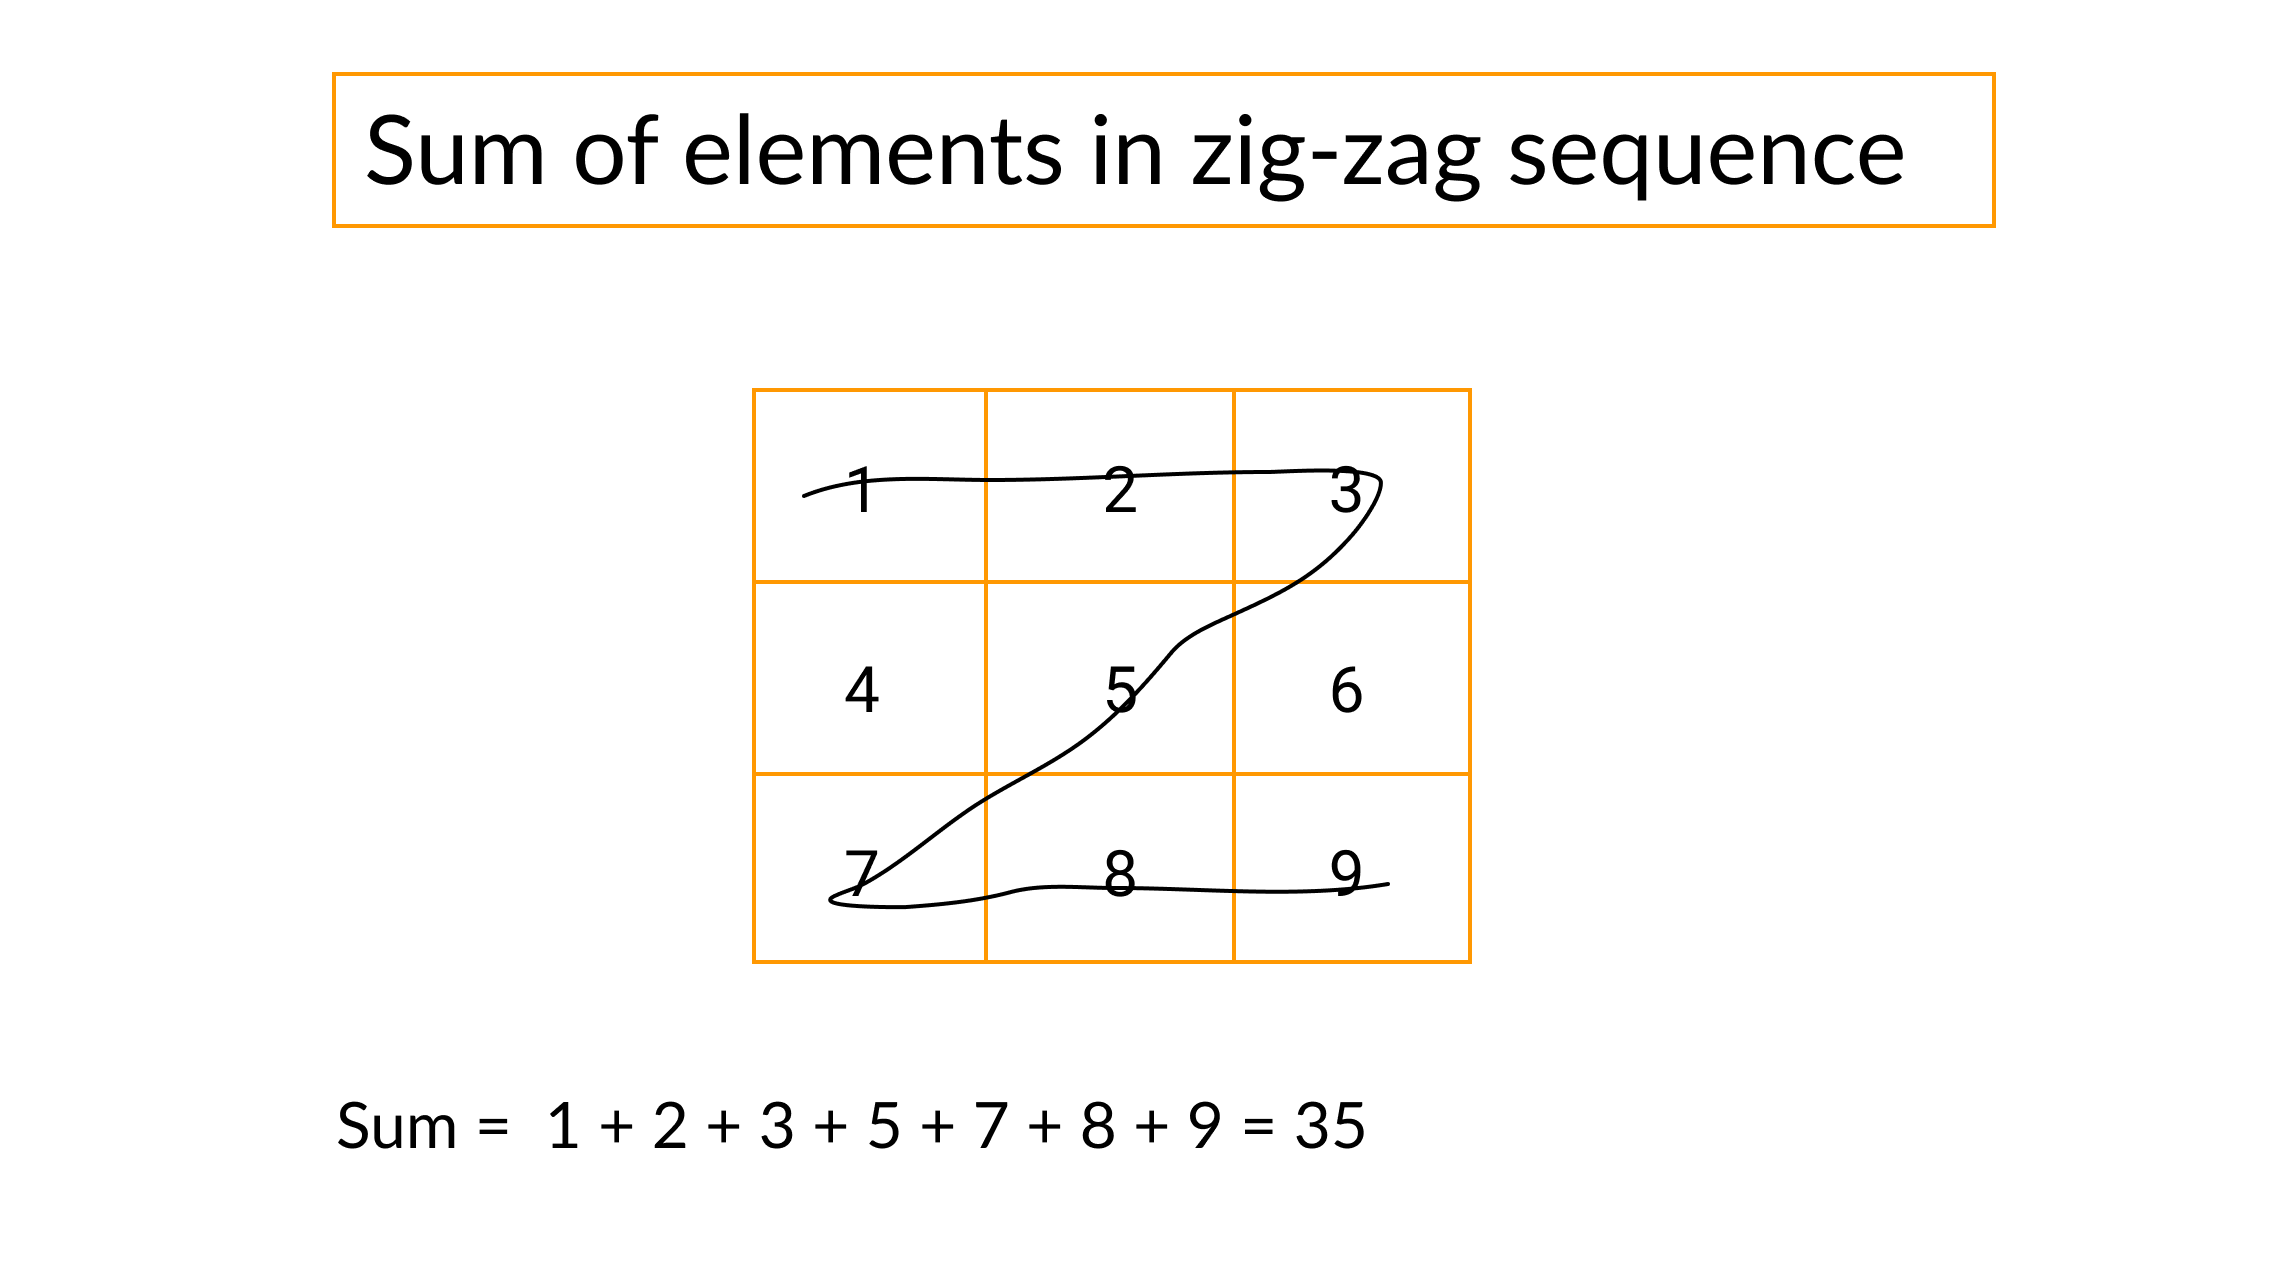 sum of elements in the zigzag sequence